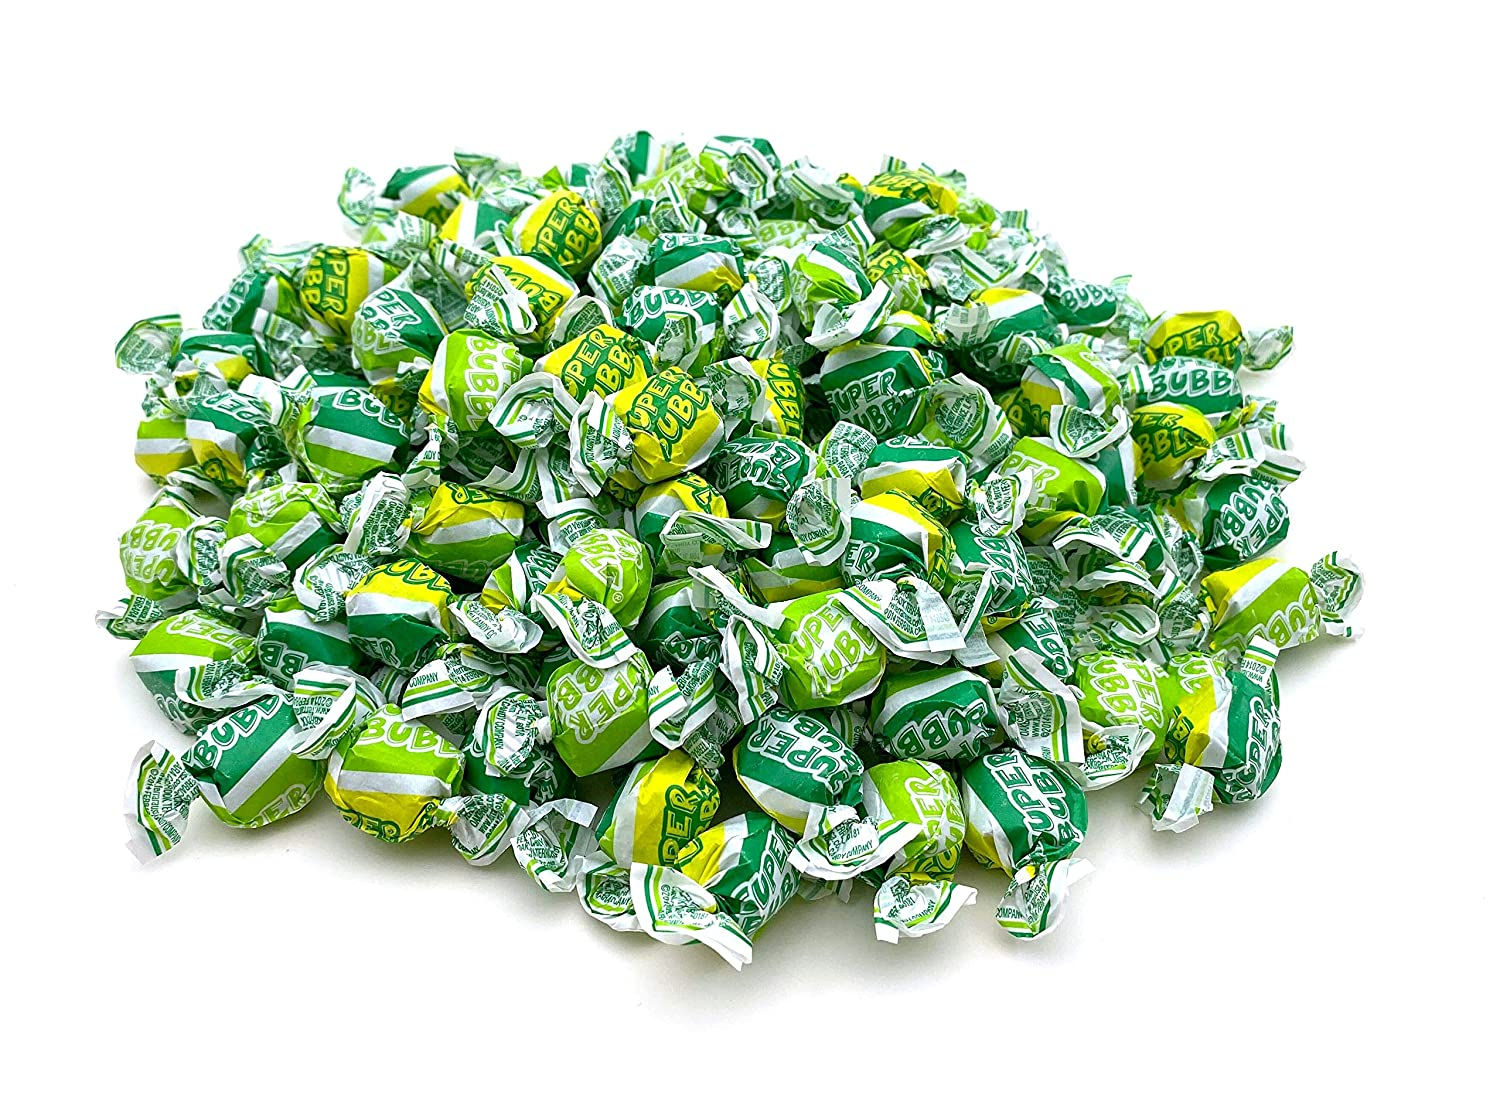 CrazyOutlet Super Bubble Gum, Soft and Easy To Chew, Apple Flavor - Bulk Pack 2 Lbs